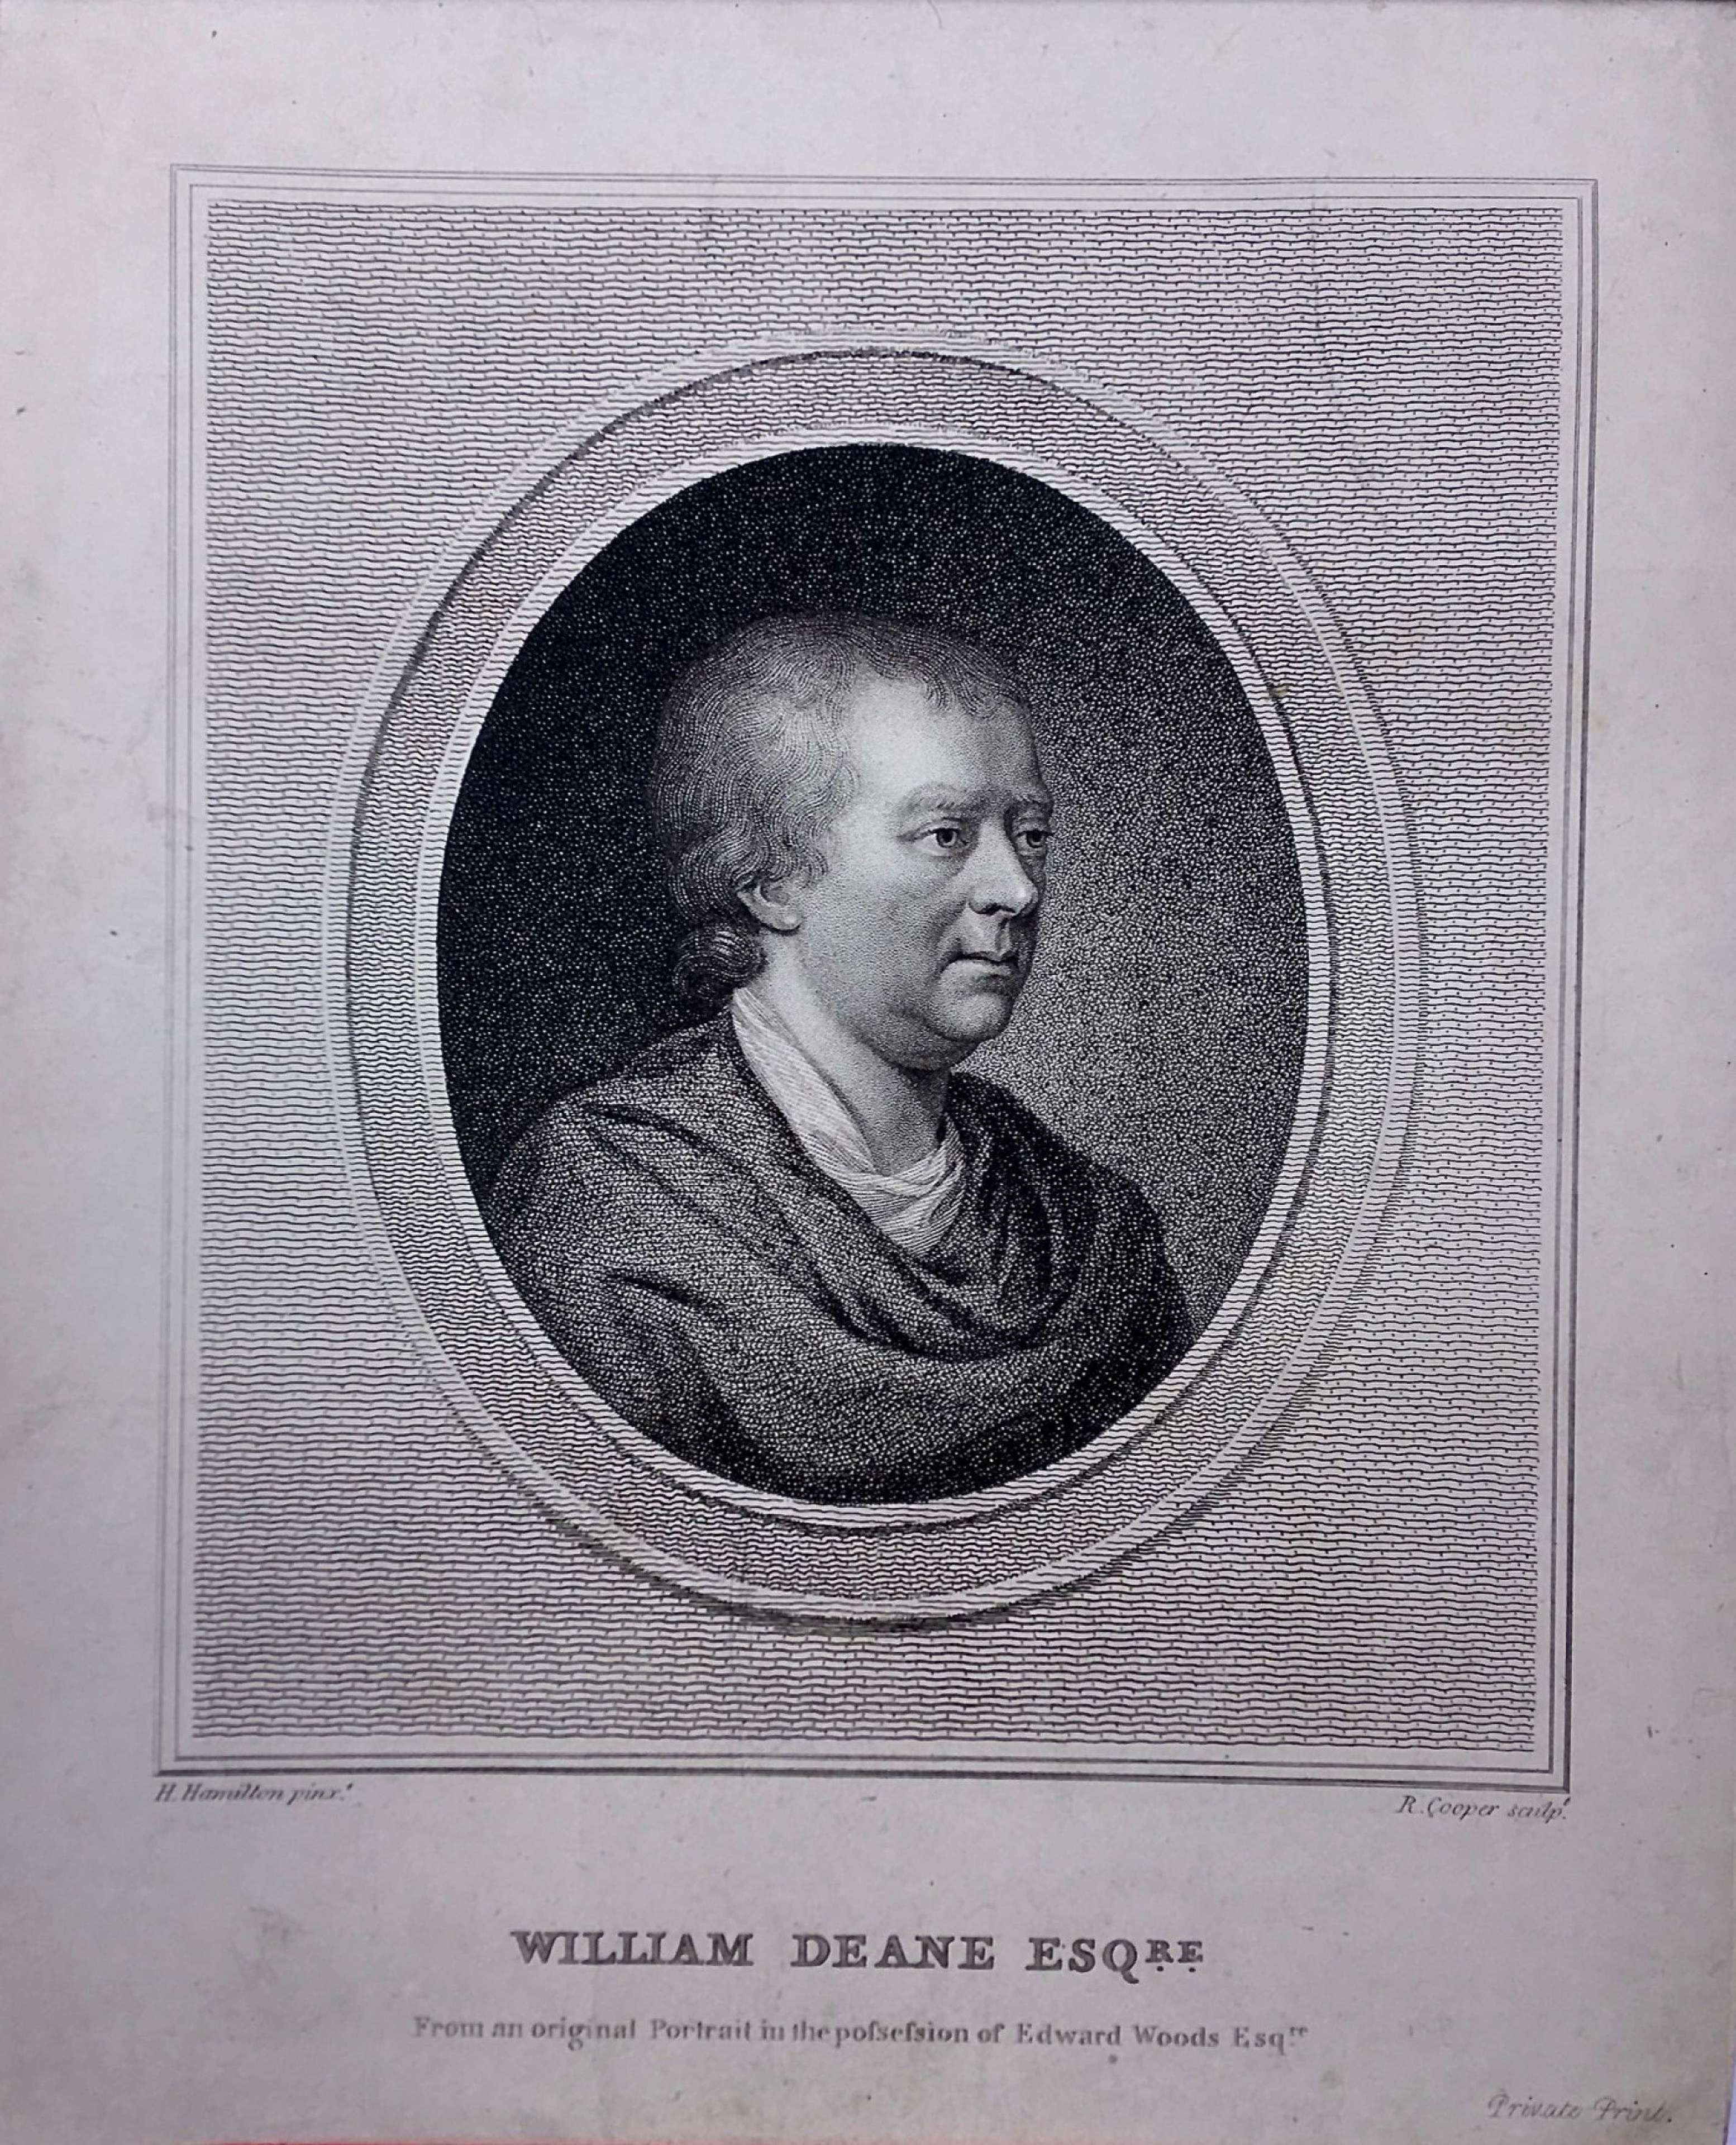 A rare privately issued portrait engraving of William Deane (d. 1793)